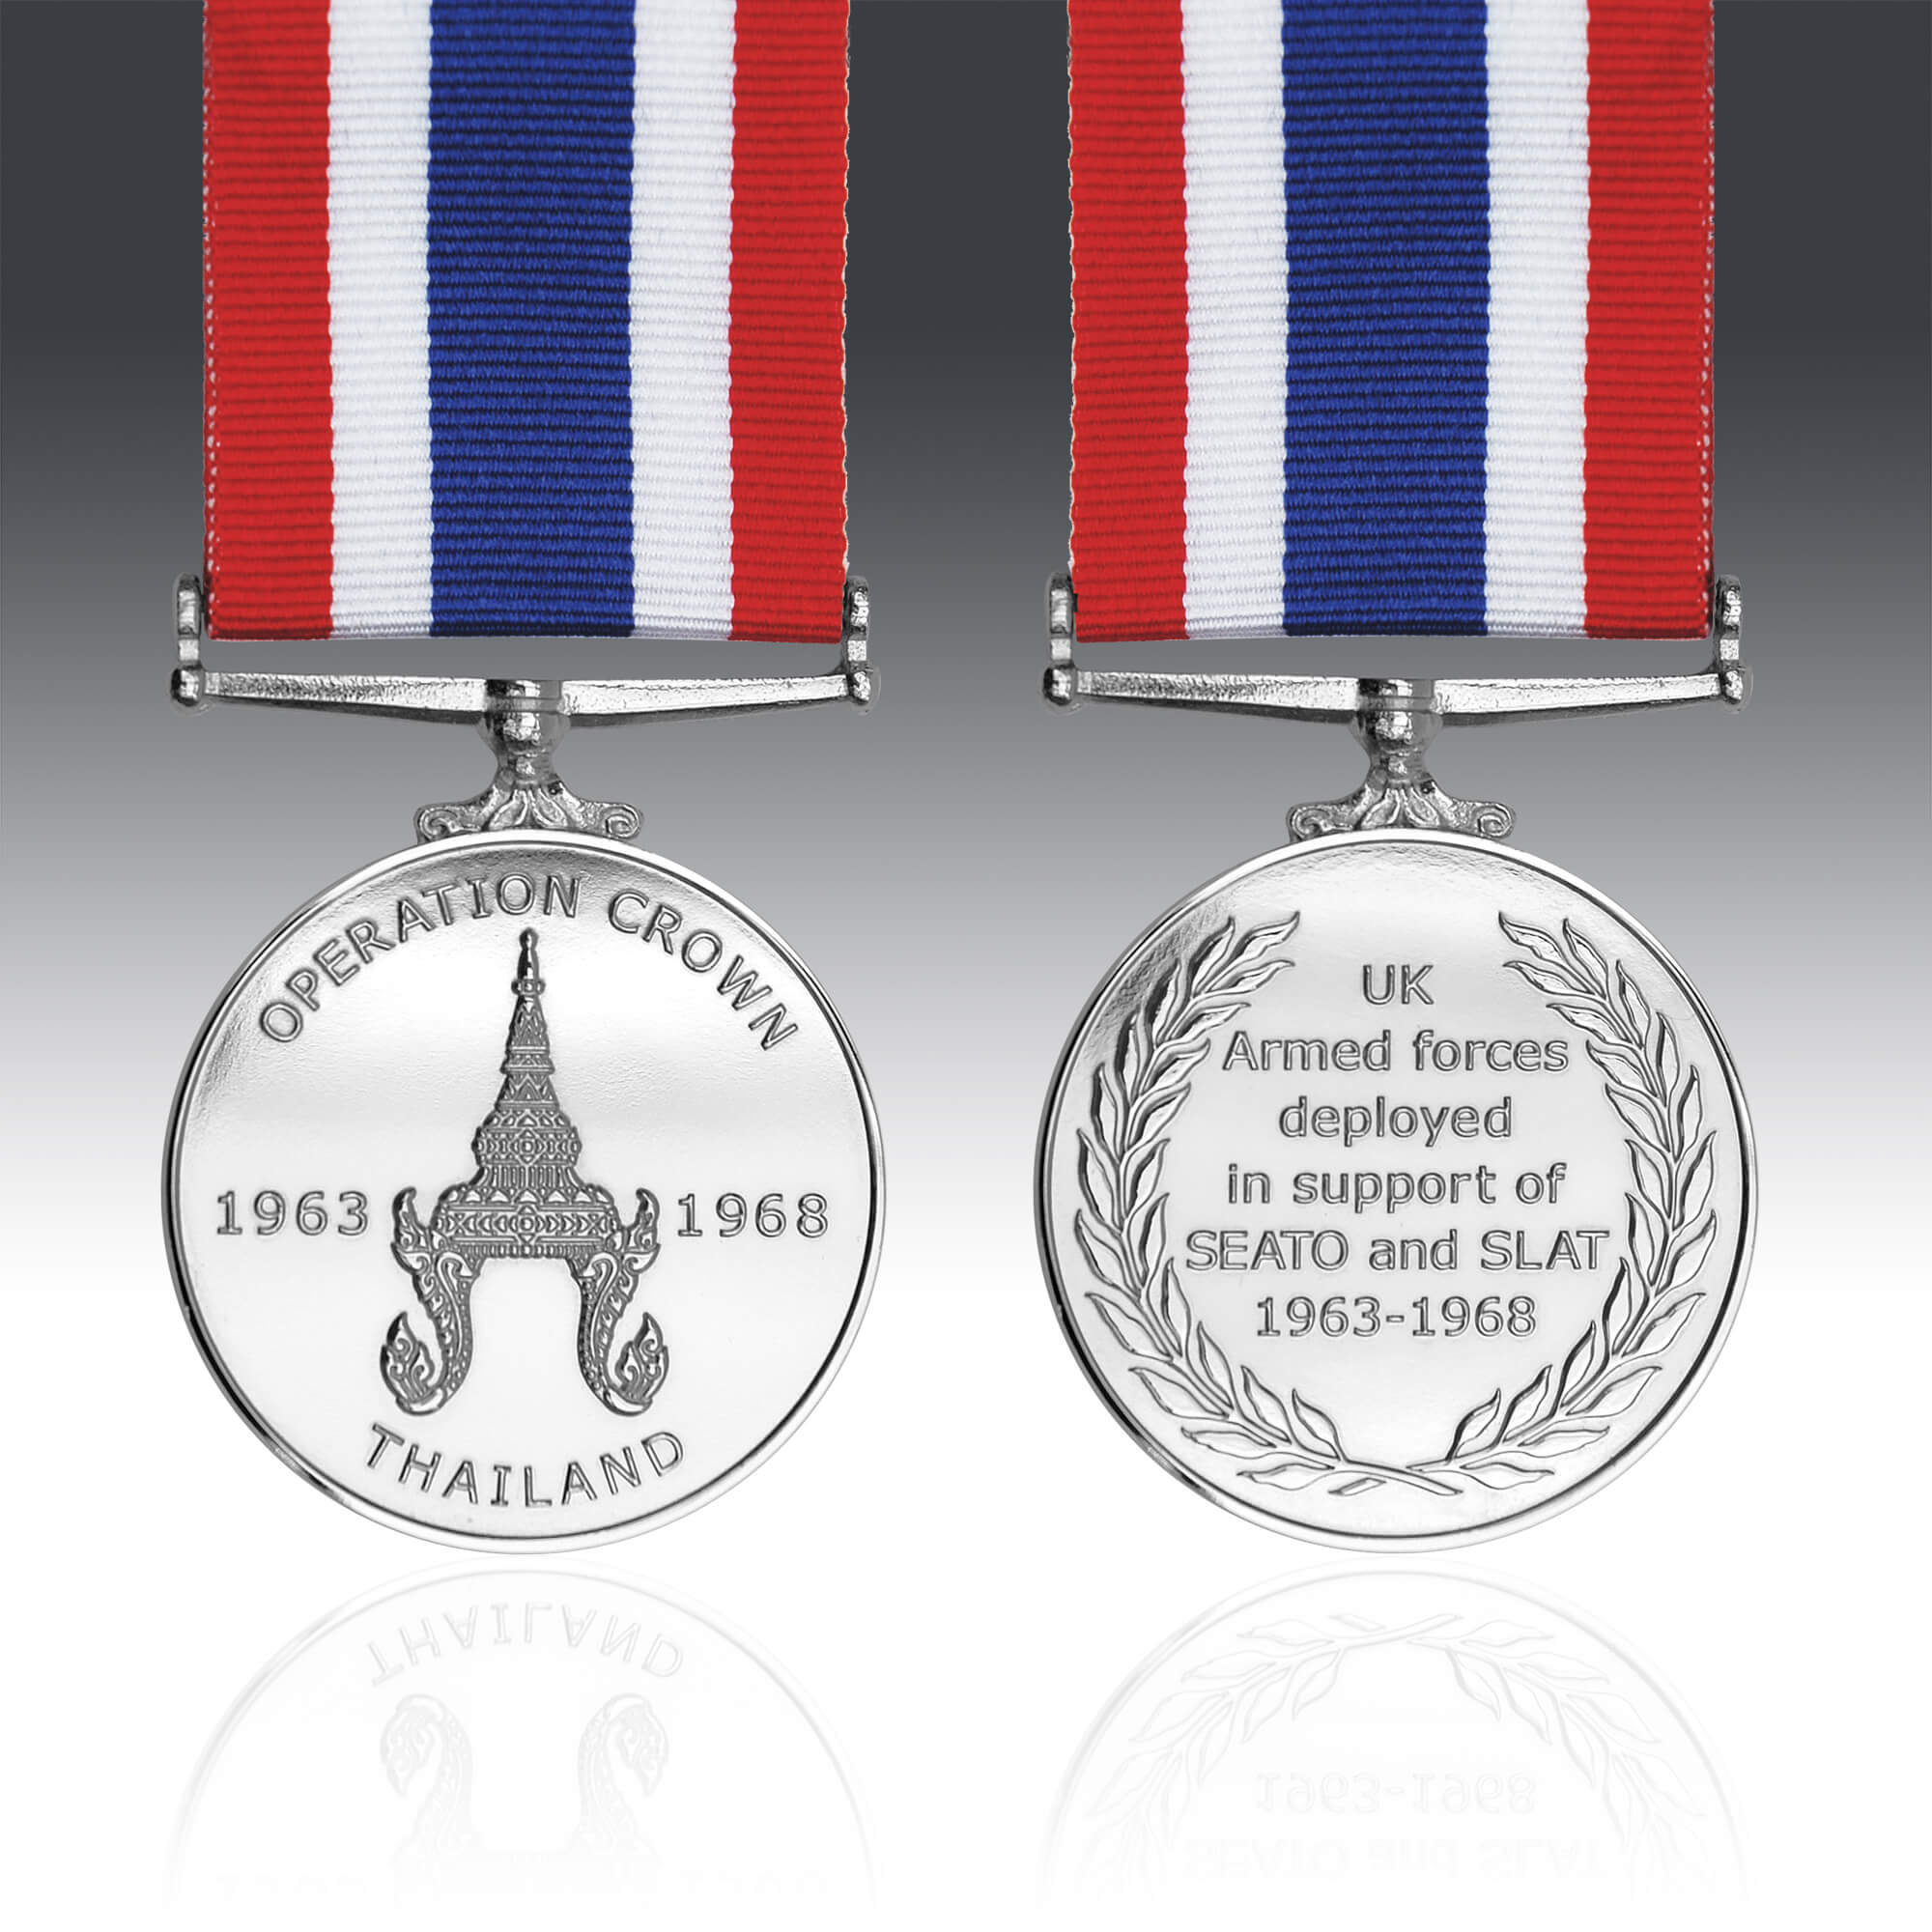 The Operation Crown Commemorative Medal 1963-1968